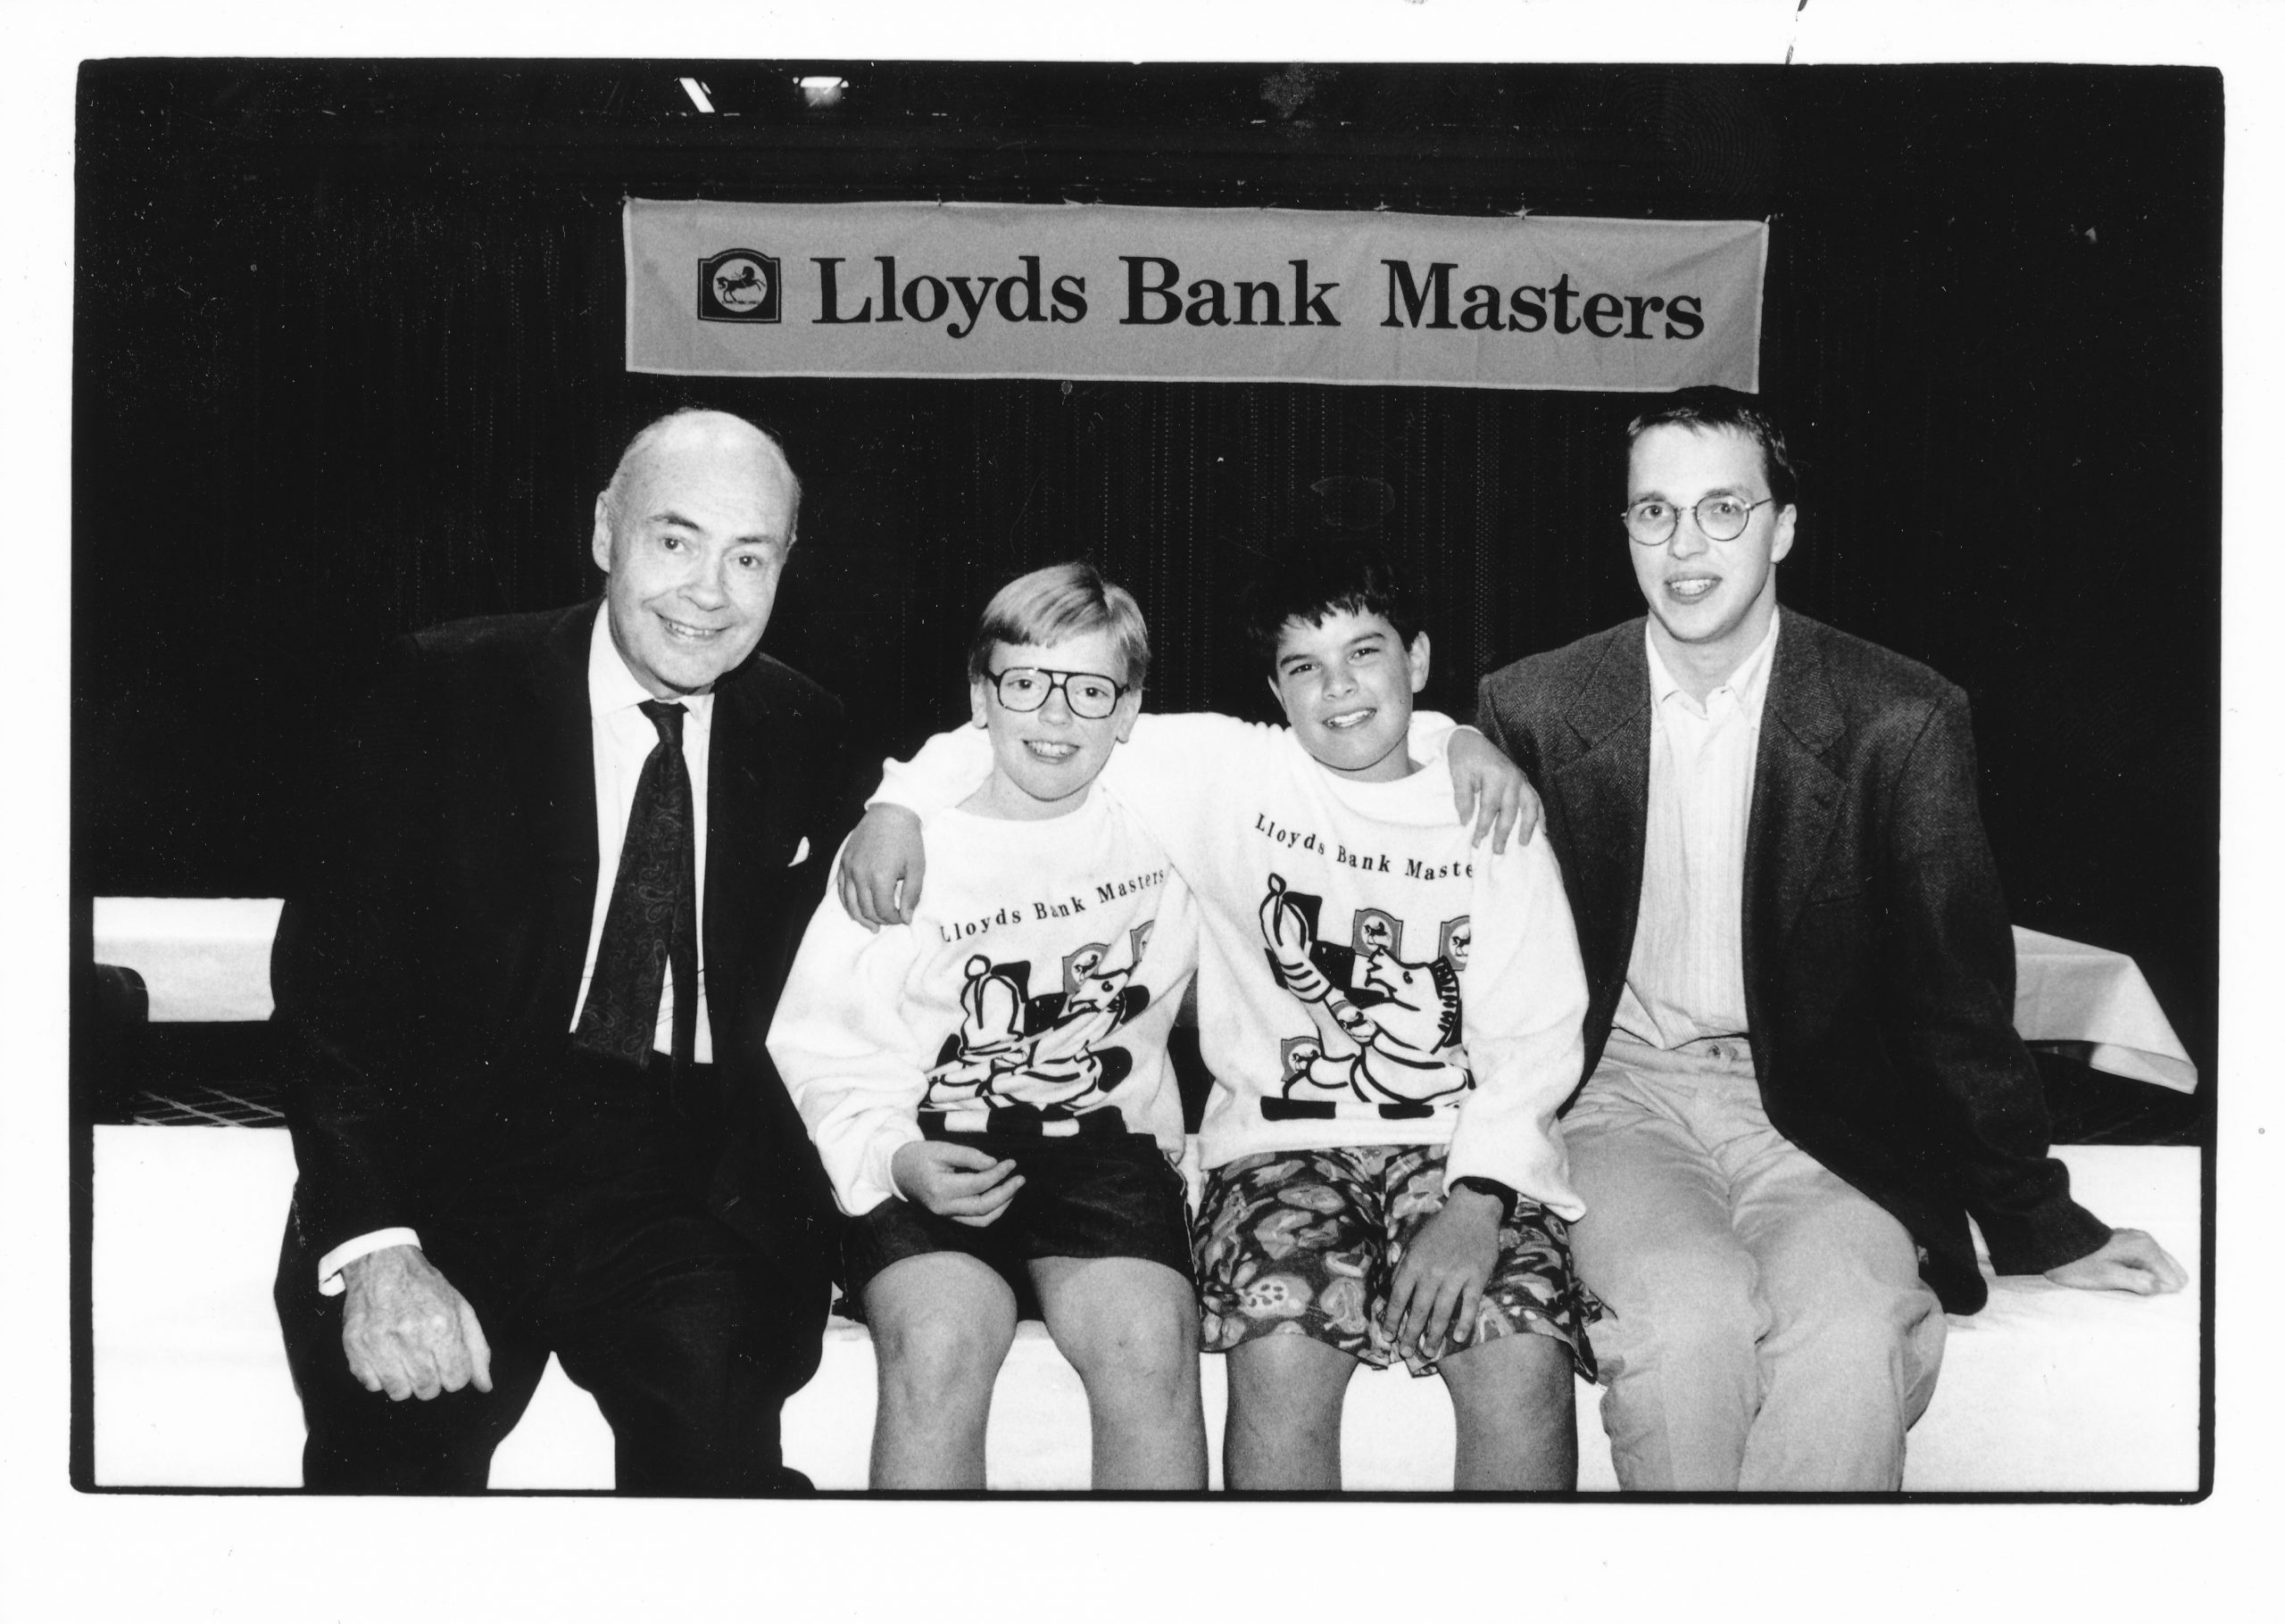 Jeremy Morse, Adam Hunt, Nick Pert and Nigel Short at the Lloyds Bank Masters